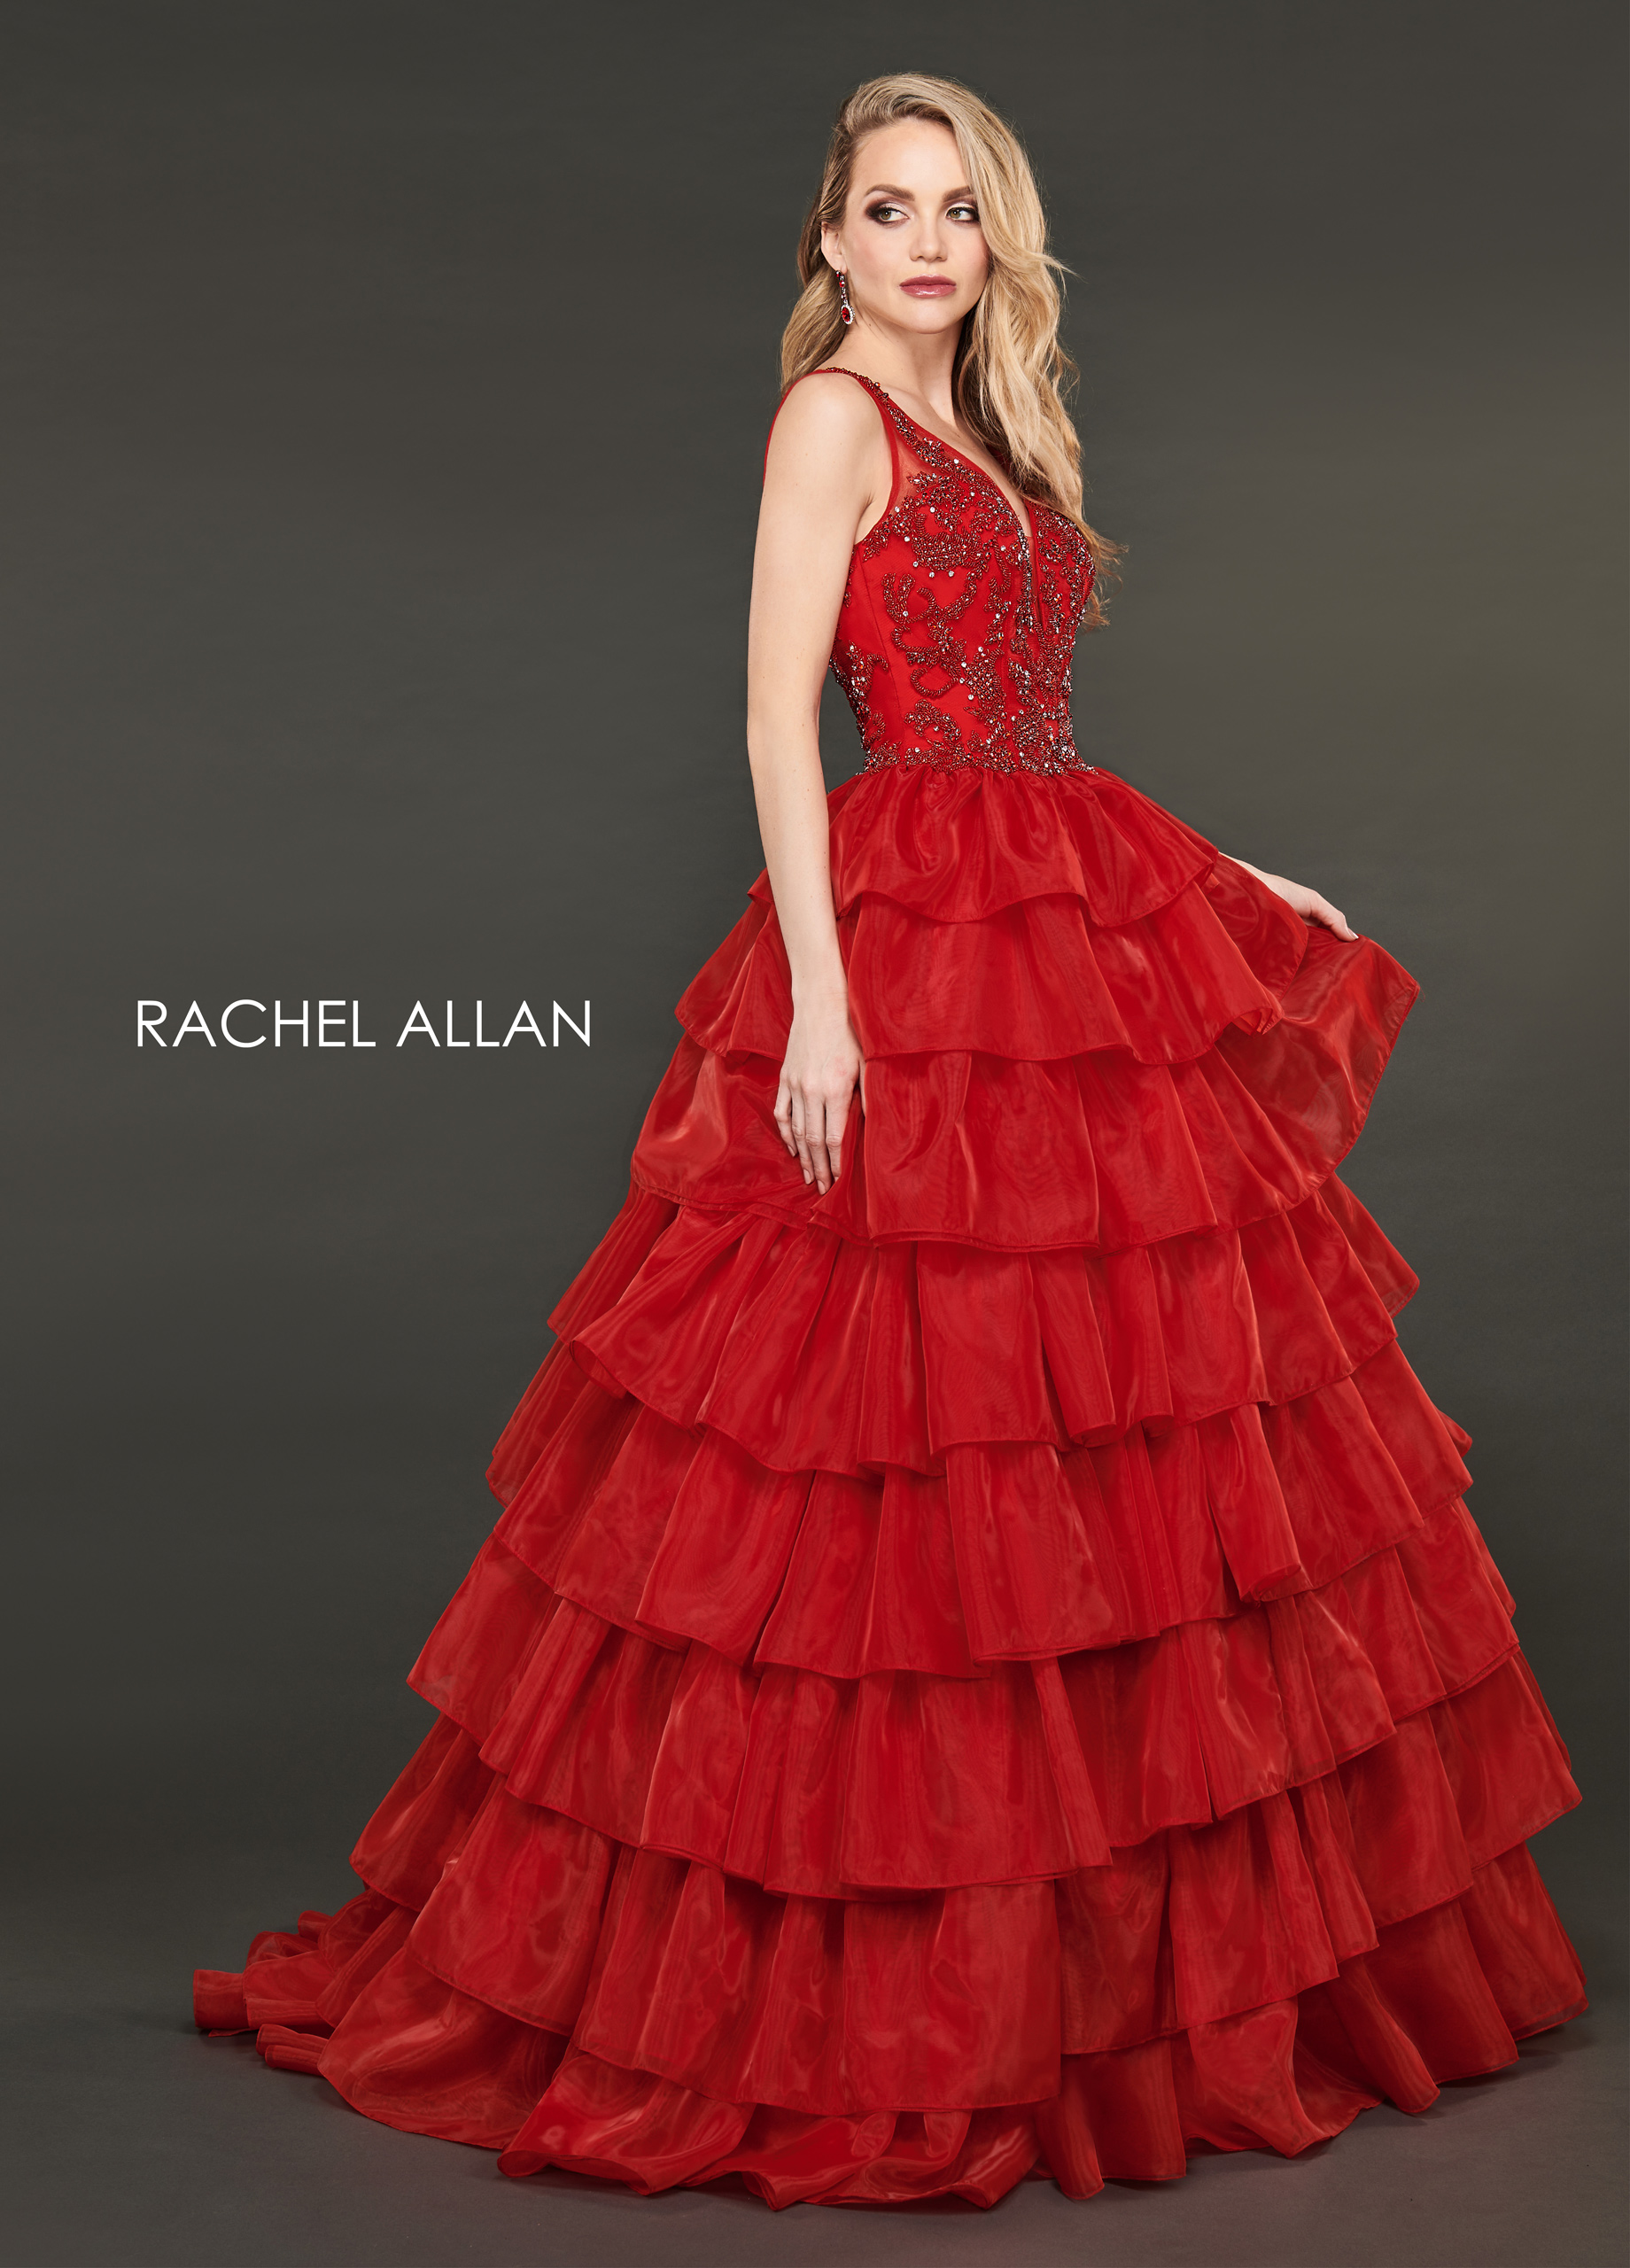 V-Neck Ball Gowns Couture Dresses in Red Color